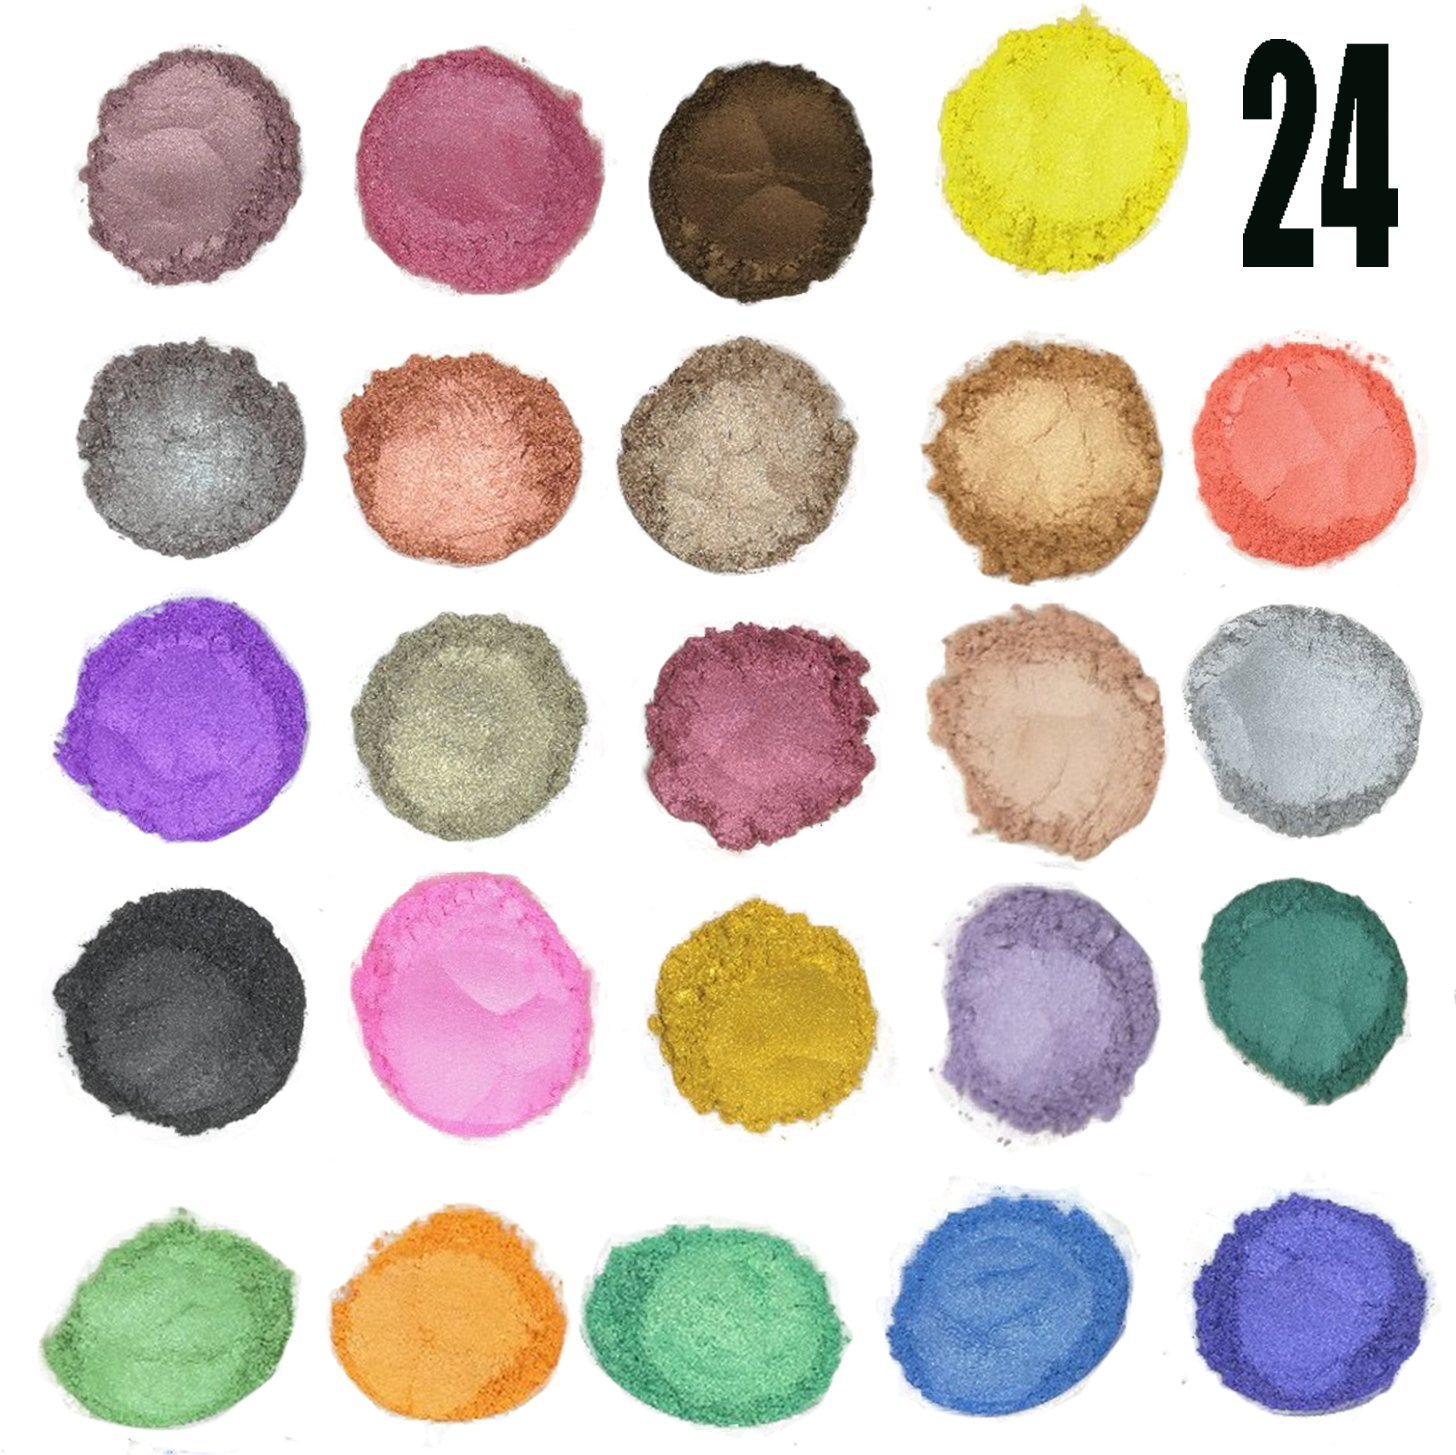 JBENG 24 Colors for Soap Coloring - Mica Powder Pigments - Soap dye - Soap Making Colorants Set - (0.1 oz 24 bags) - Candle Making, Blush, Eye Shadow, Craft Projects, Nail Art, Resin Jewelry 54454